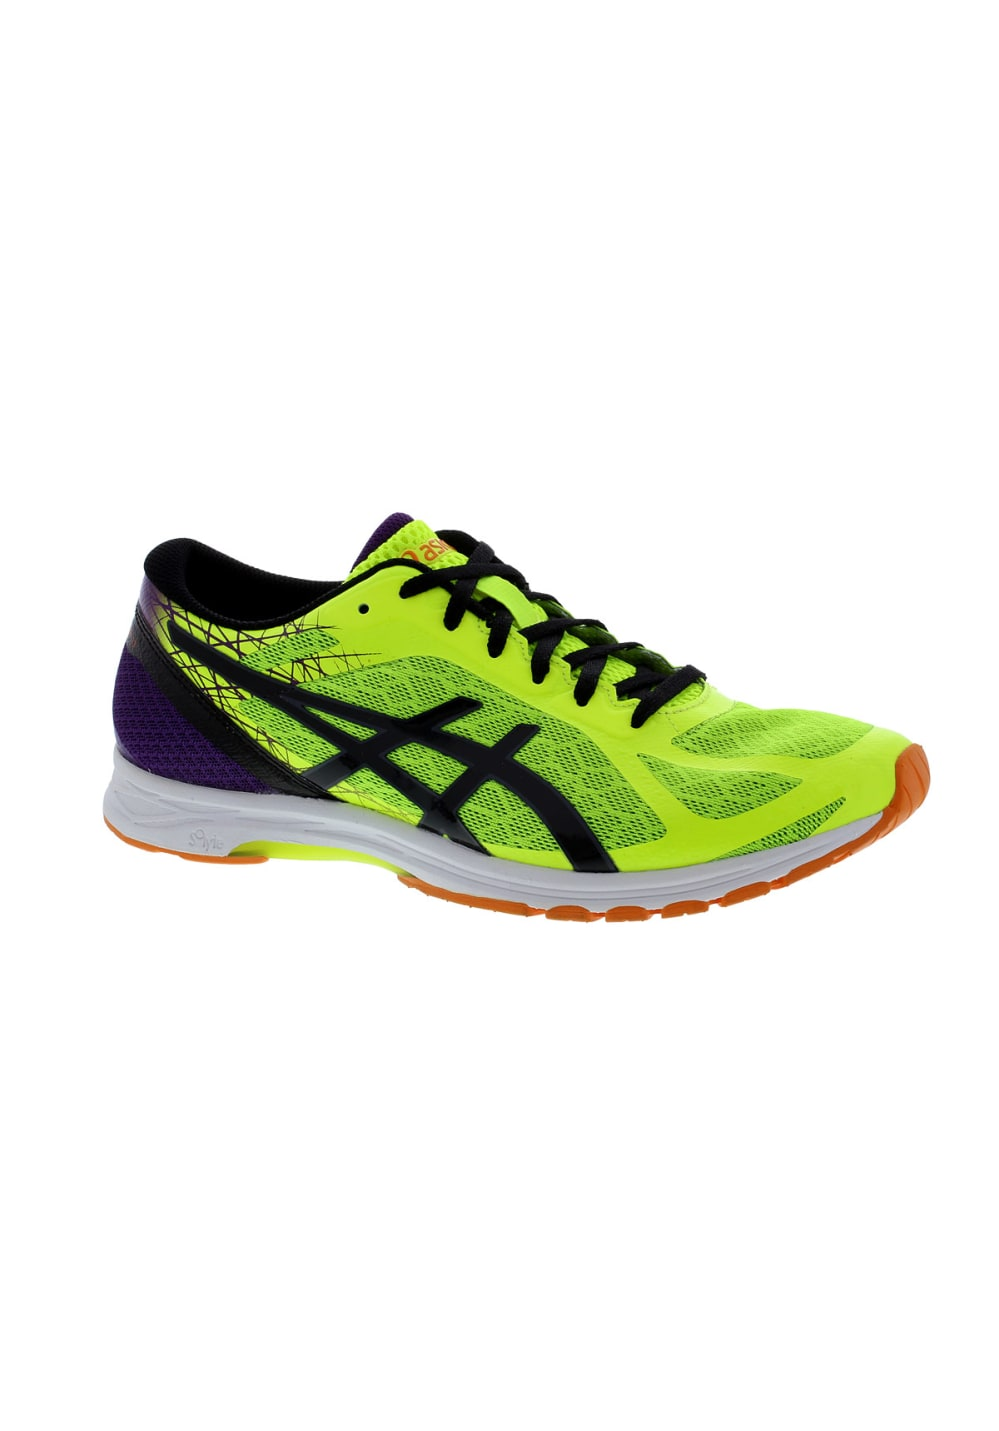 meilleur site web 81206 f6bc3 ASICS GEL-DS Racer 11 - Running shoes for Men - Yellow